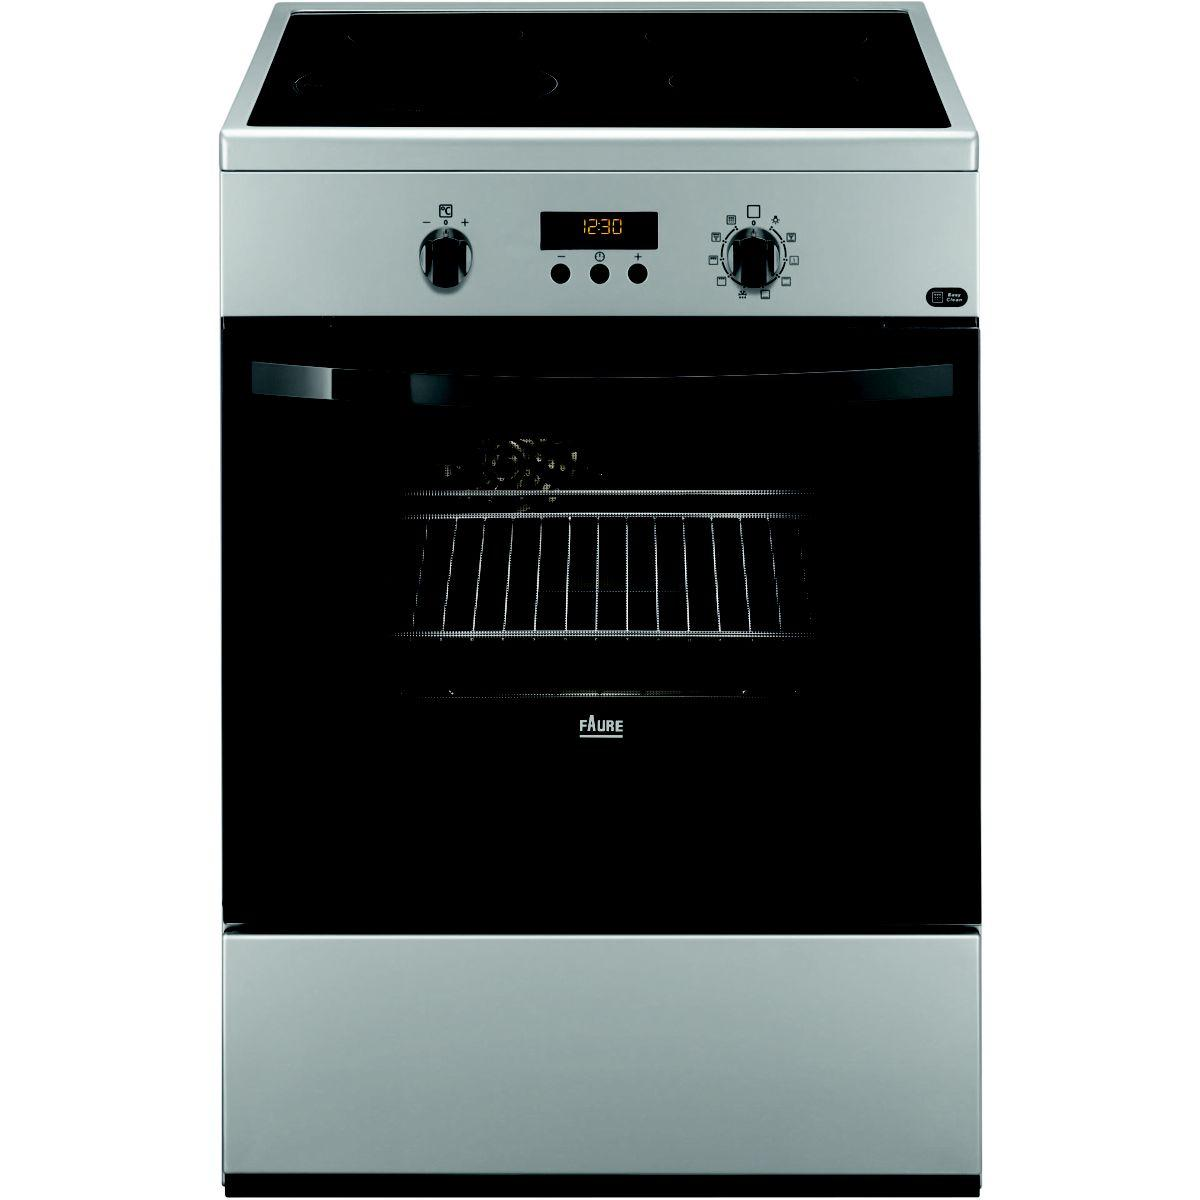 Cuisini?re induction faure fci6561psa - livraison offerte : co...